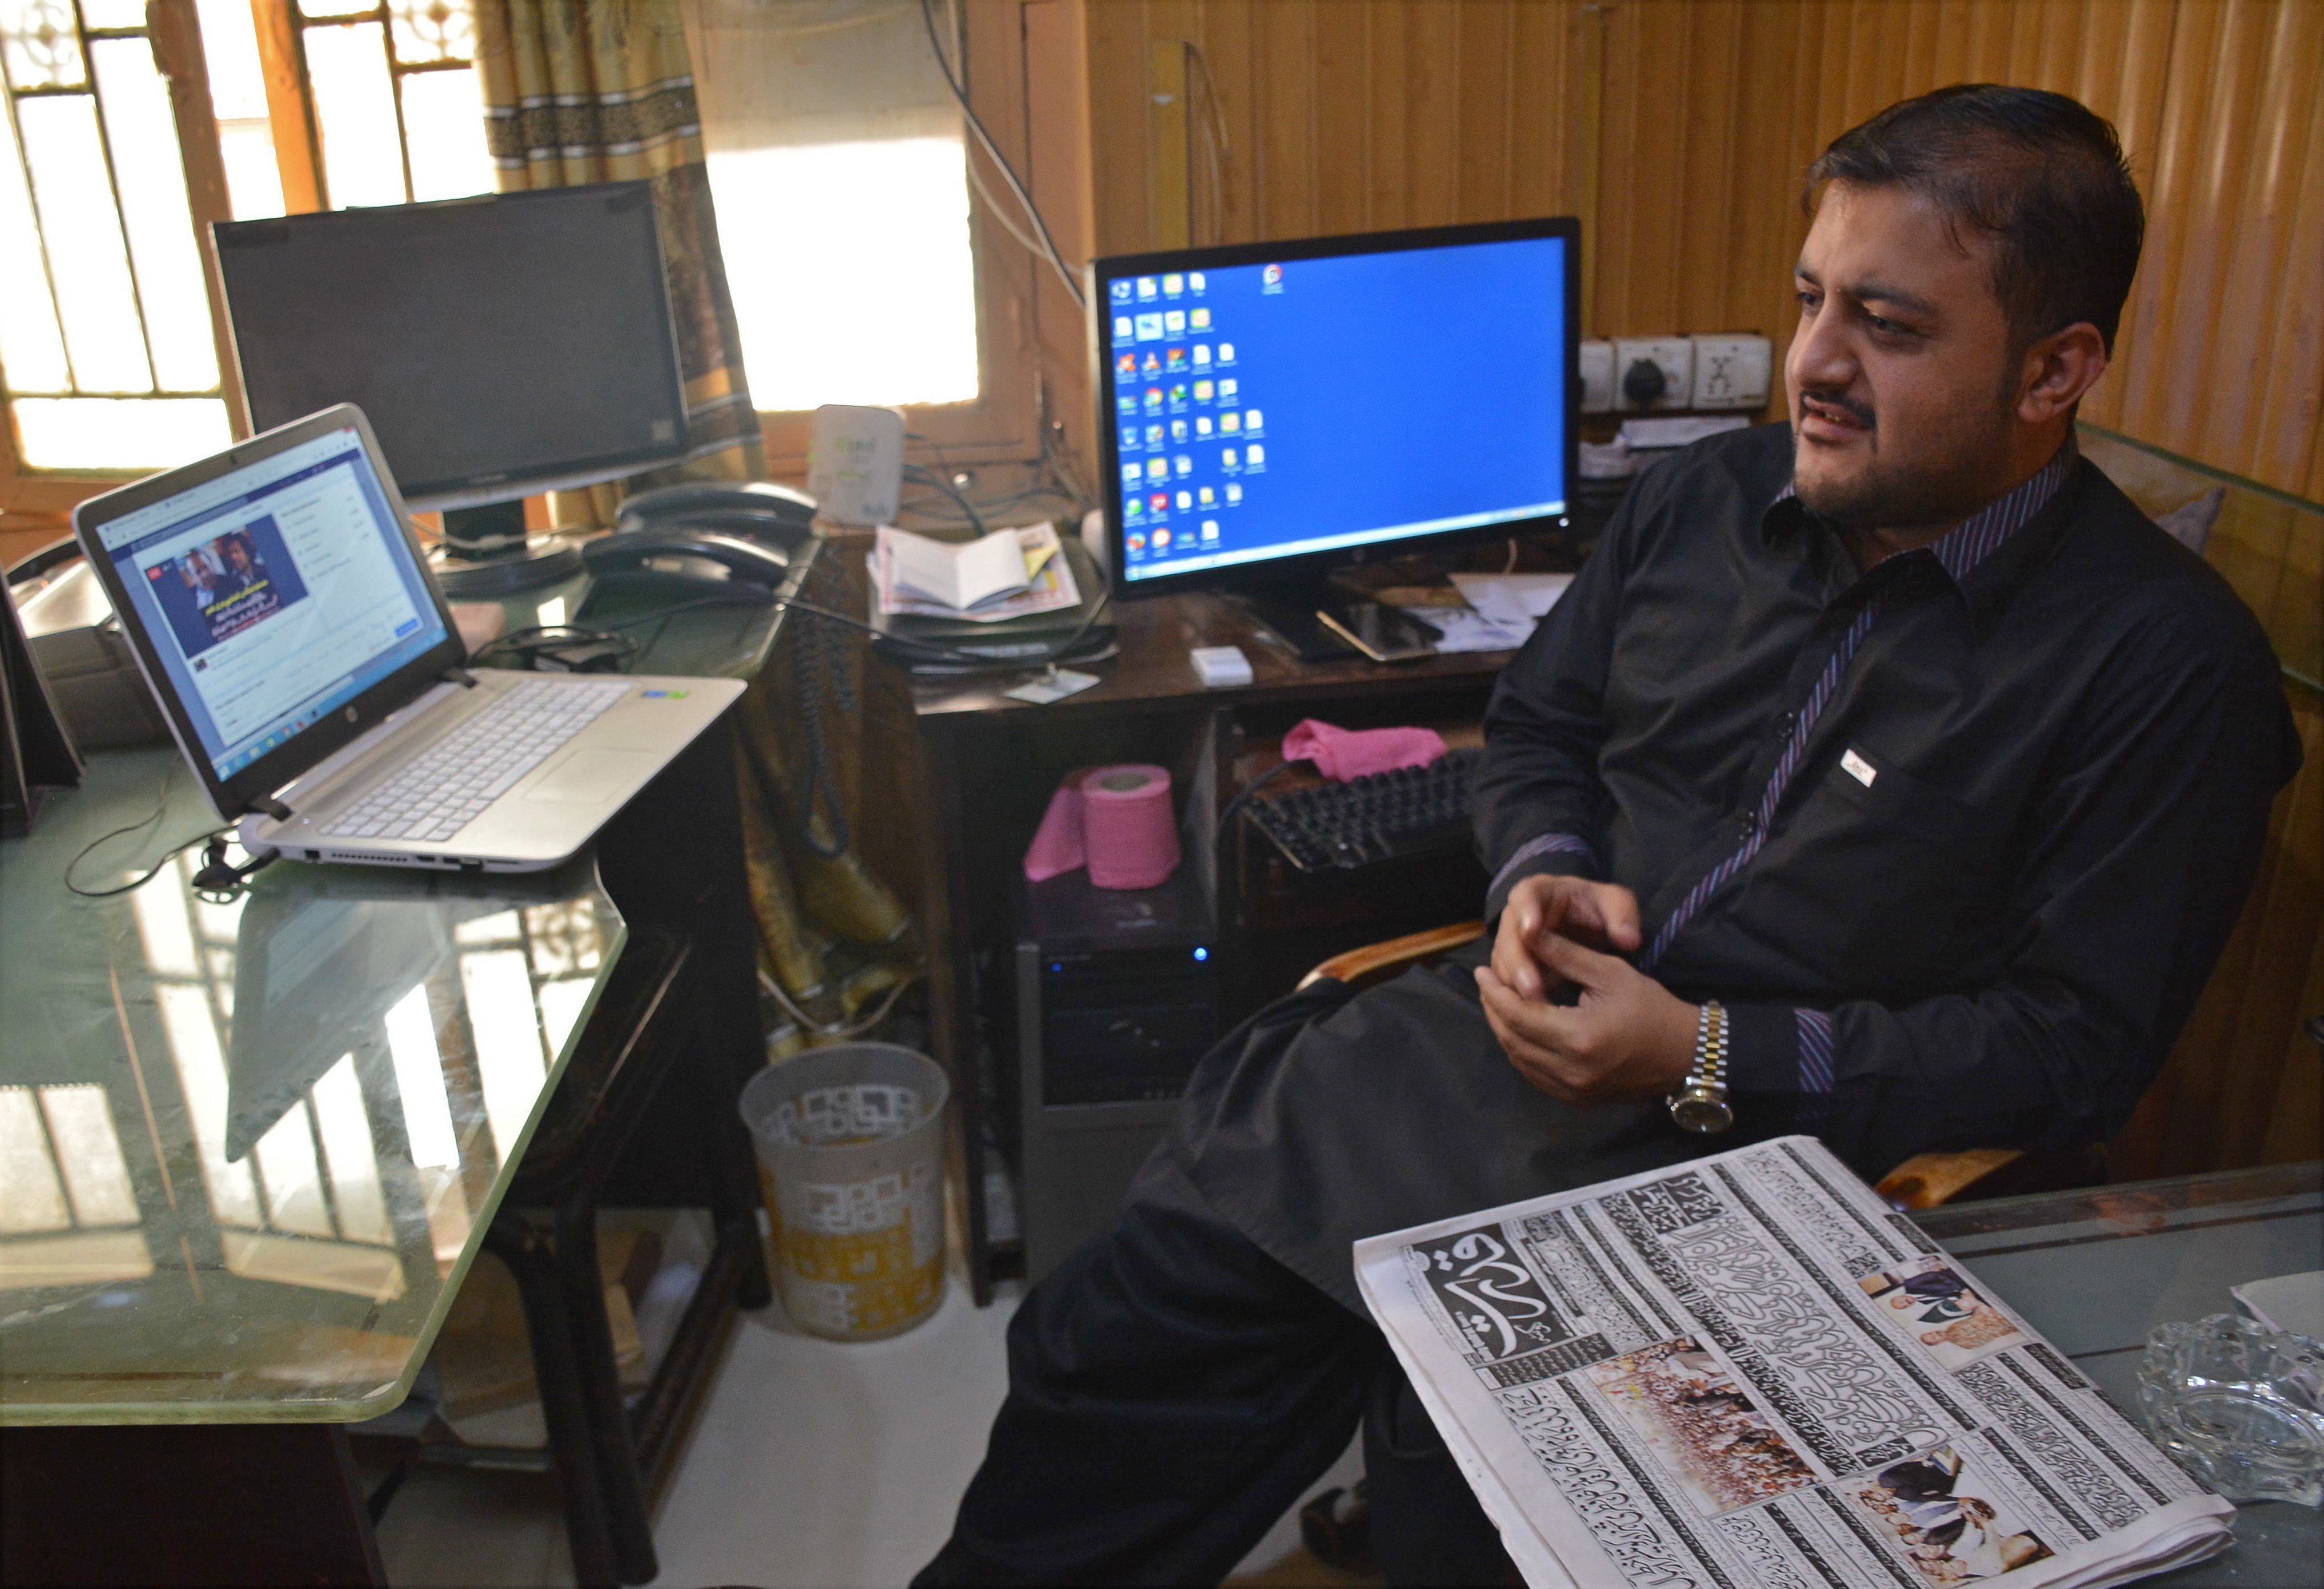 FILE - Journalist Zafar Achakzai, who was held for sharing content criticizing security forces on social media, sits in his office after being released from jail, in Quetta, Pakistan, July 9, 2017.